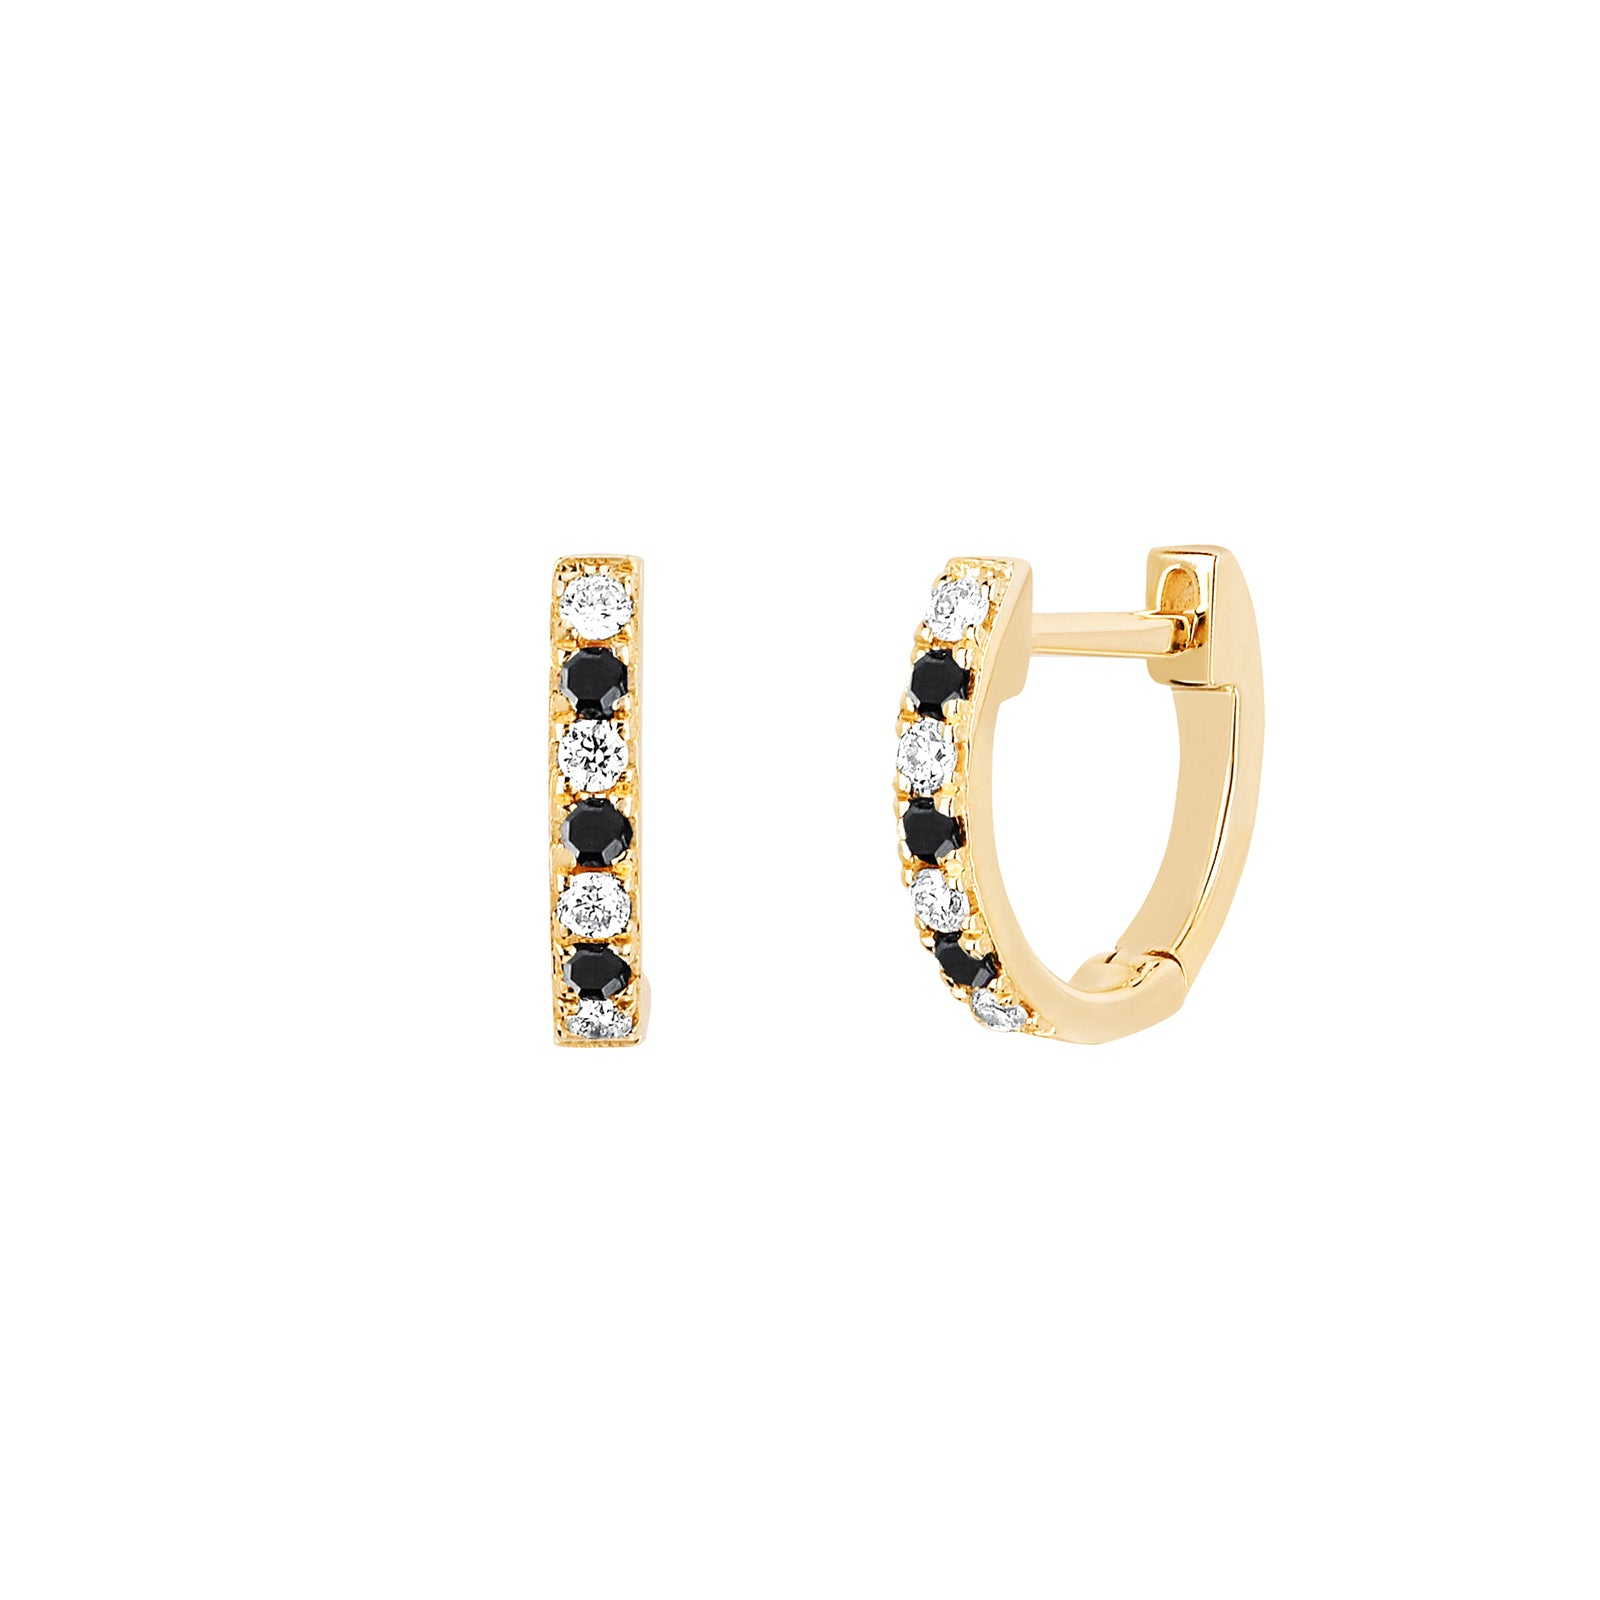 EF Collection Black & White Diamond Huggies - Yellow Gold - Earrings - Broken English Jewelry